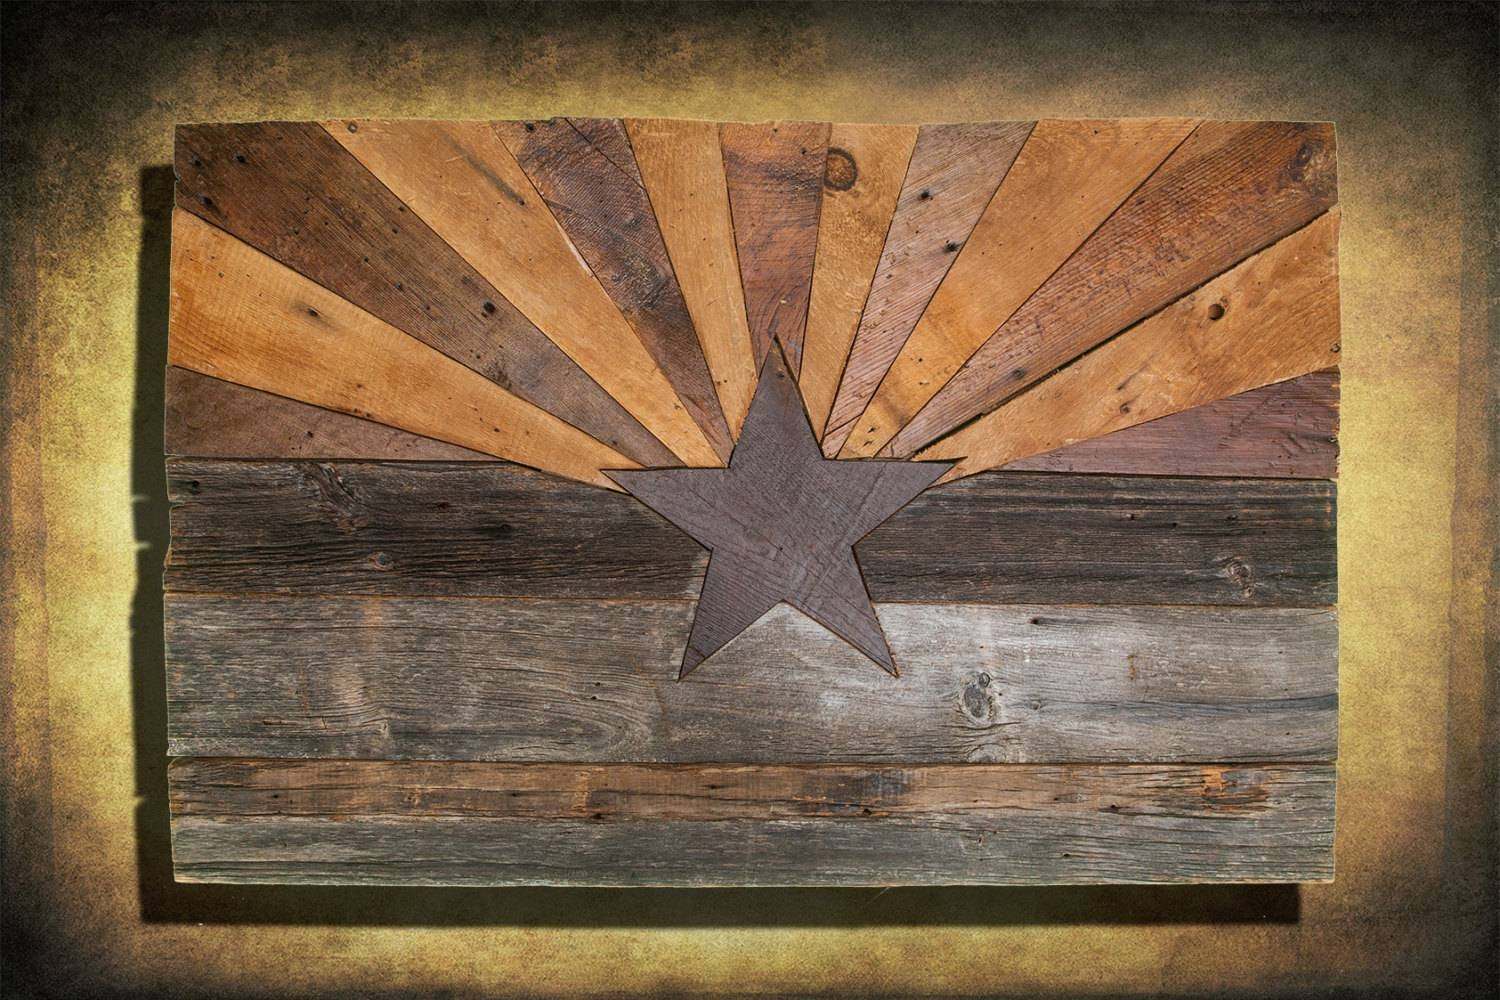 Barn Wood Arizona Flag, Handmade, Distressed Natural Wood, Vintage Pertaining To 2017 Natural Wood Wall Art (View 4 of 20)